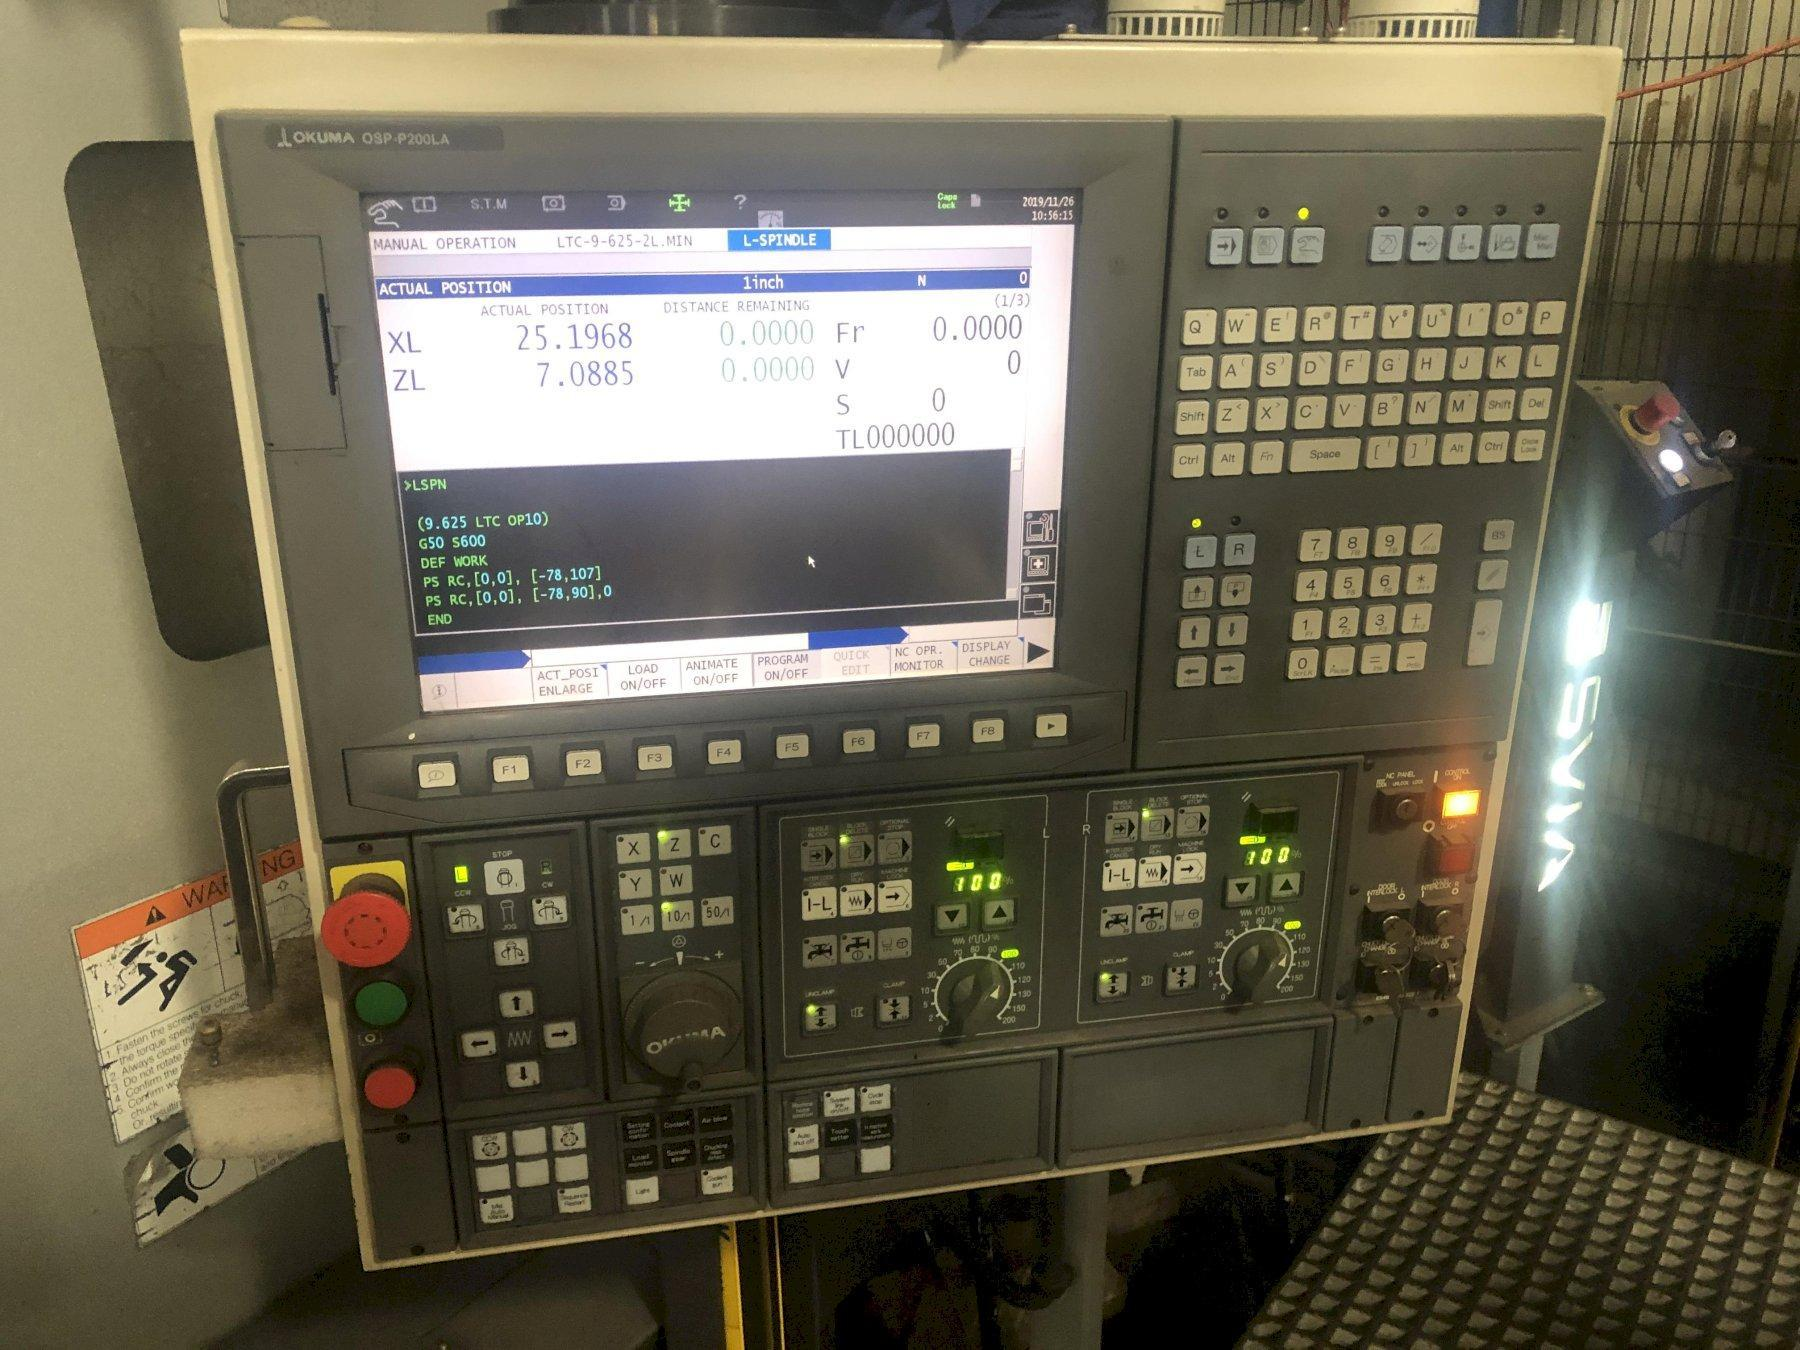 2012 Okuma 2SP-V60 - CNC Twin Spindle Vertical Turret Lathe